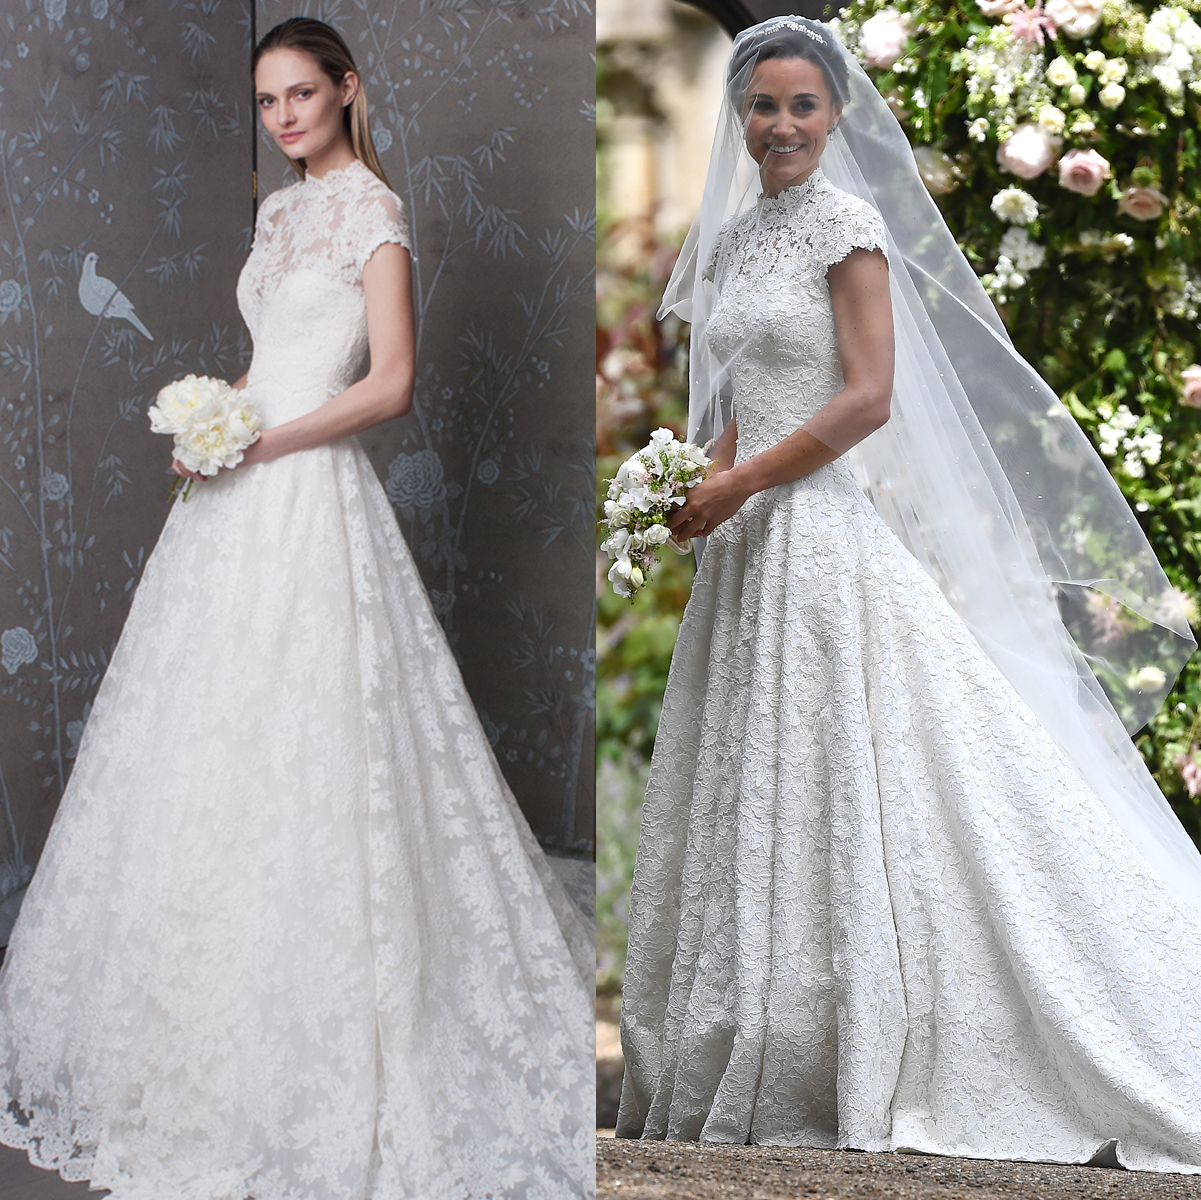 romona keveza look 7179 with look 8129, pippa middleton wedding dress